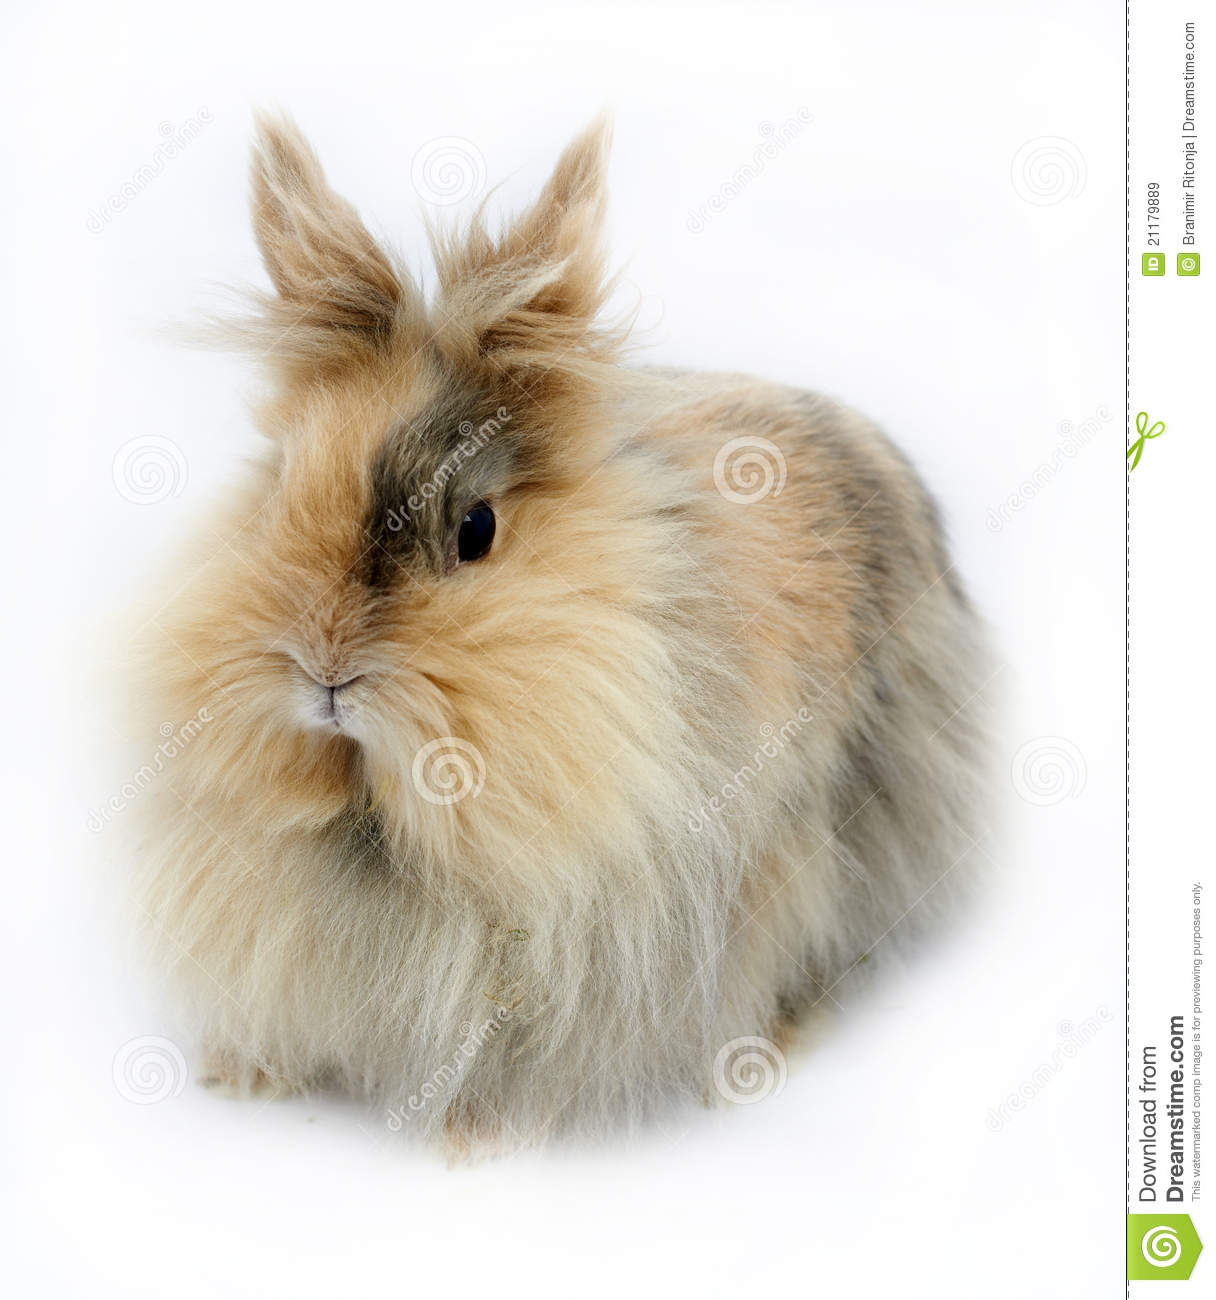 Decorative house rabbit